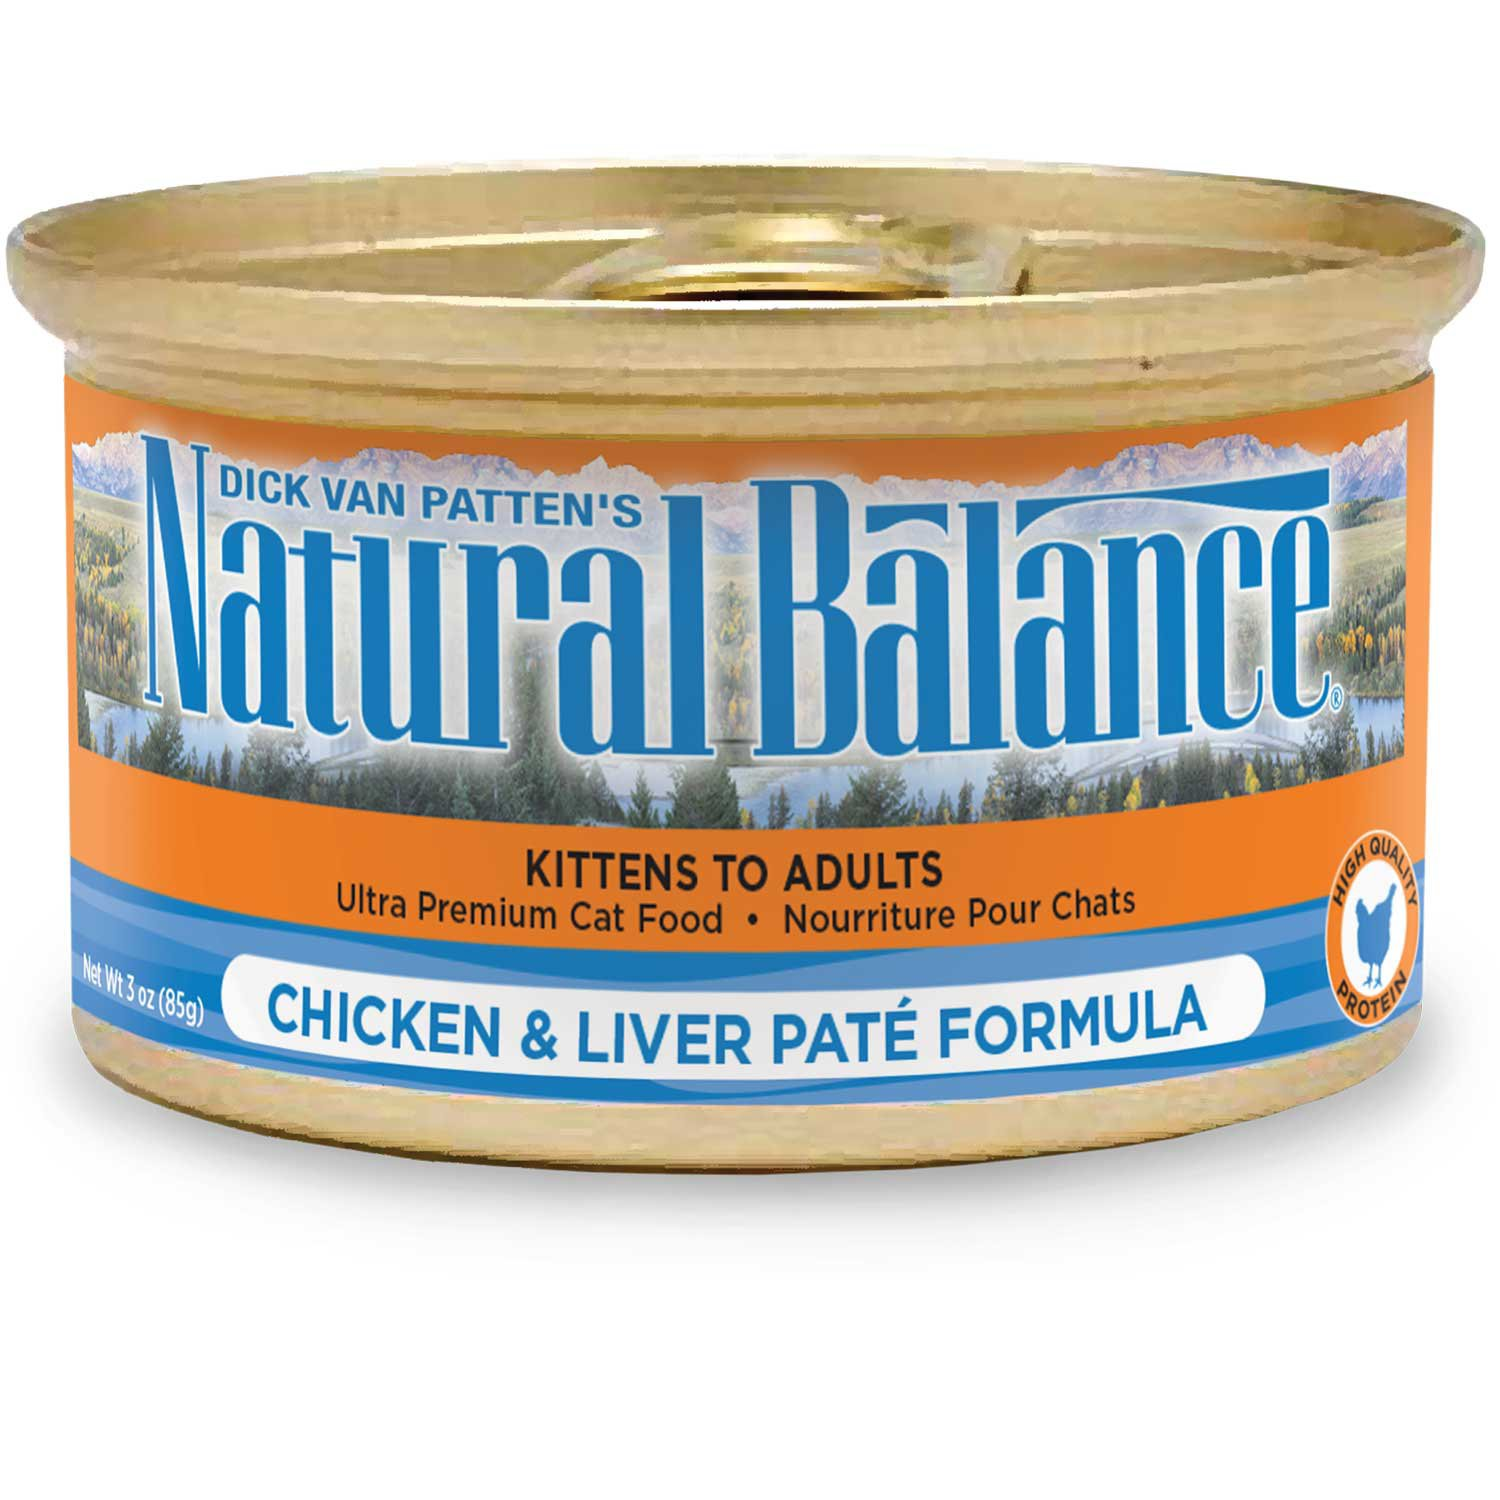 Dick van pattens natural balance ultra premium cat food